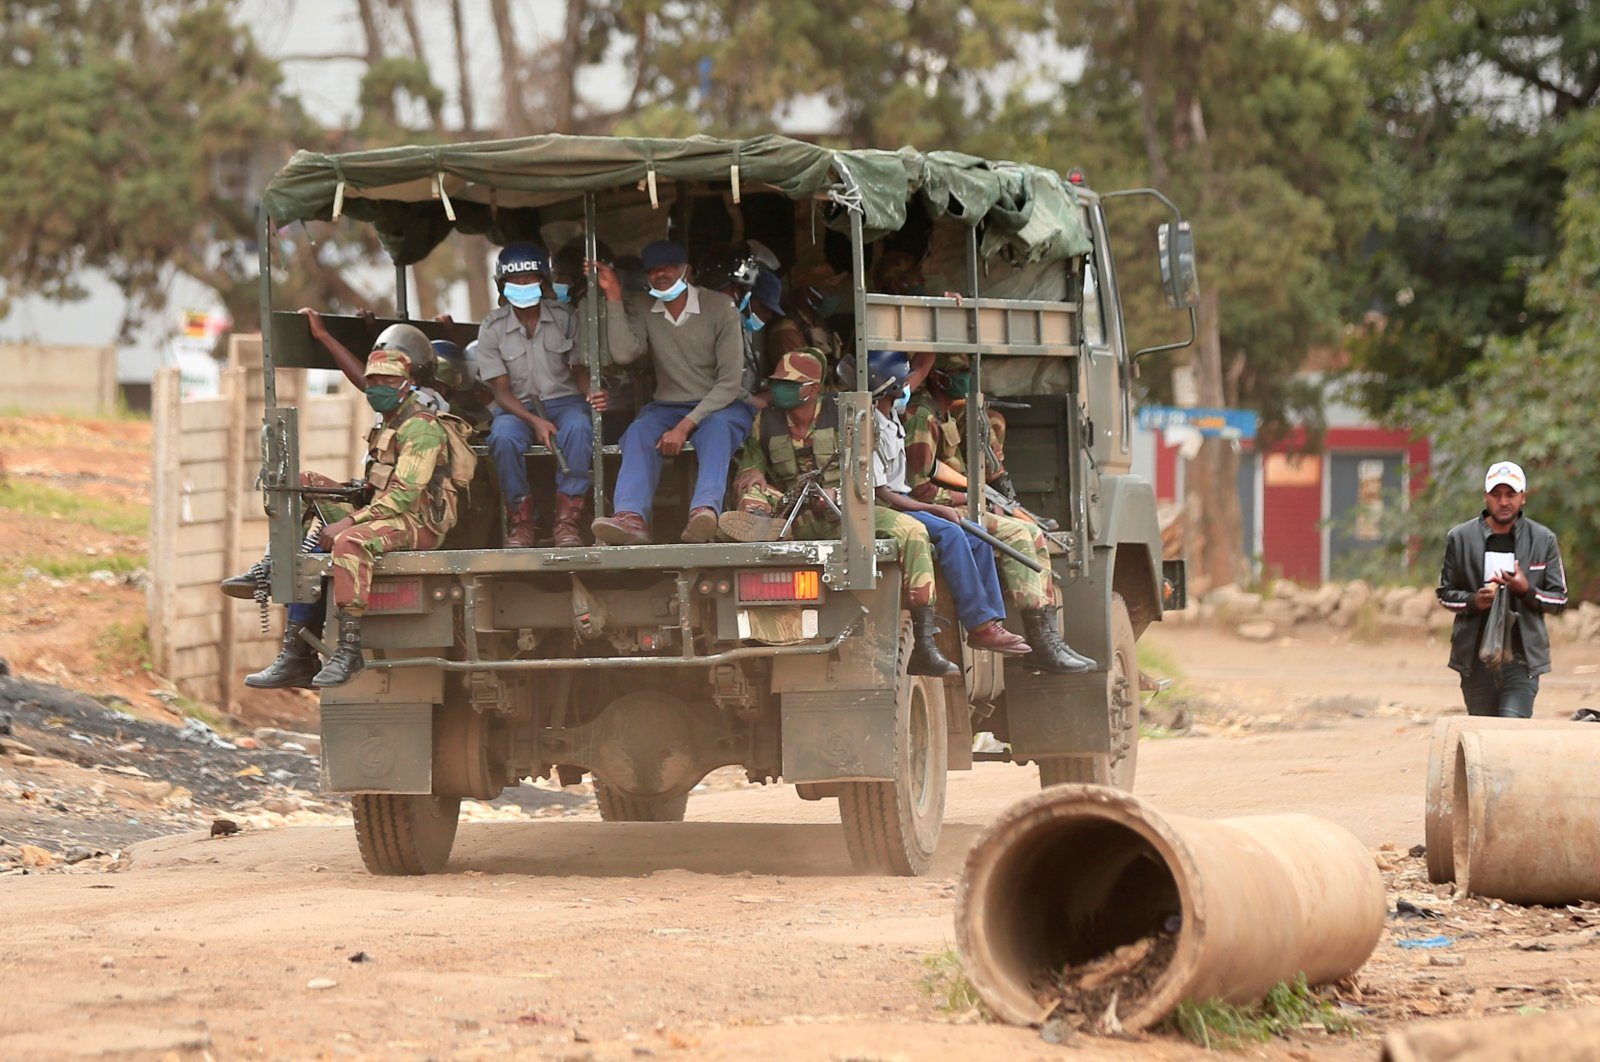 Police and soldiers patrol the streets during a nationwide lockdown called to help curb the spread of coronavirus disease in Harare, Zimbabwe, April 19, 2020. (Reuters Photo)